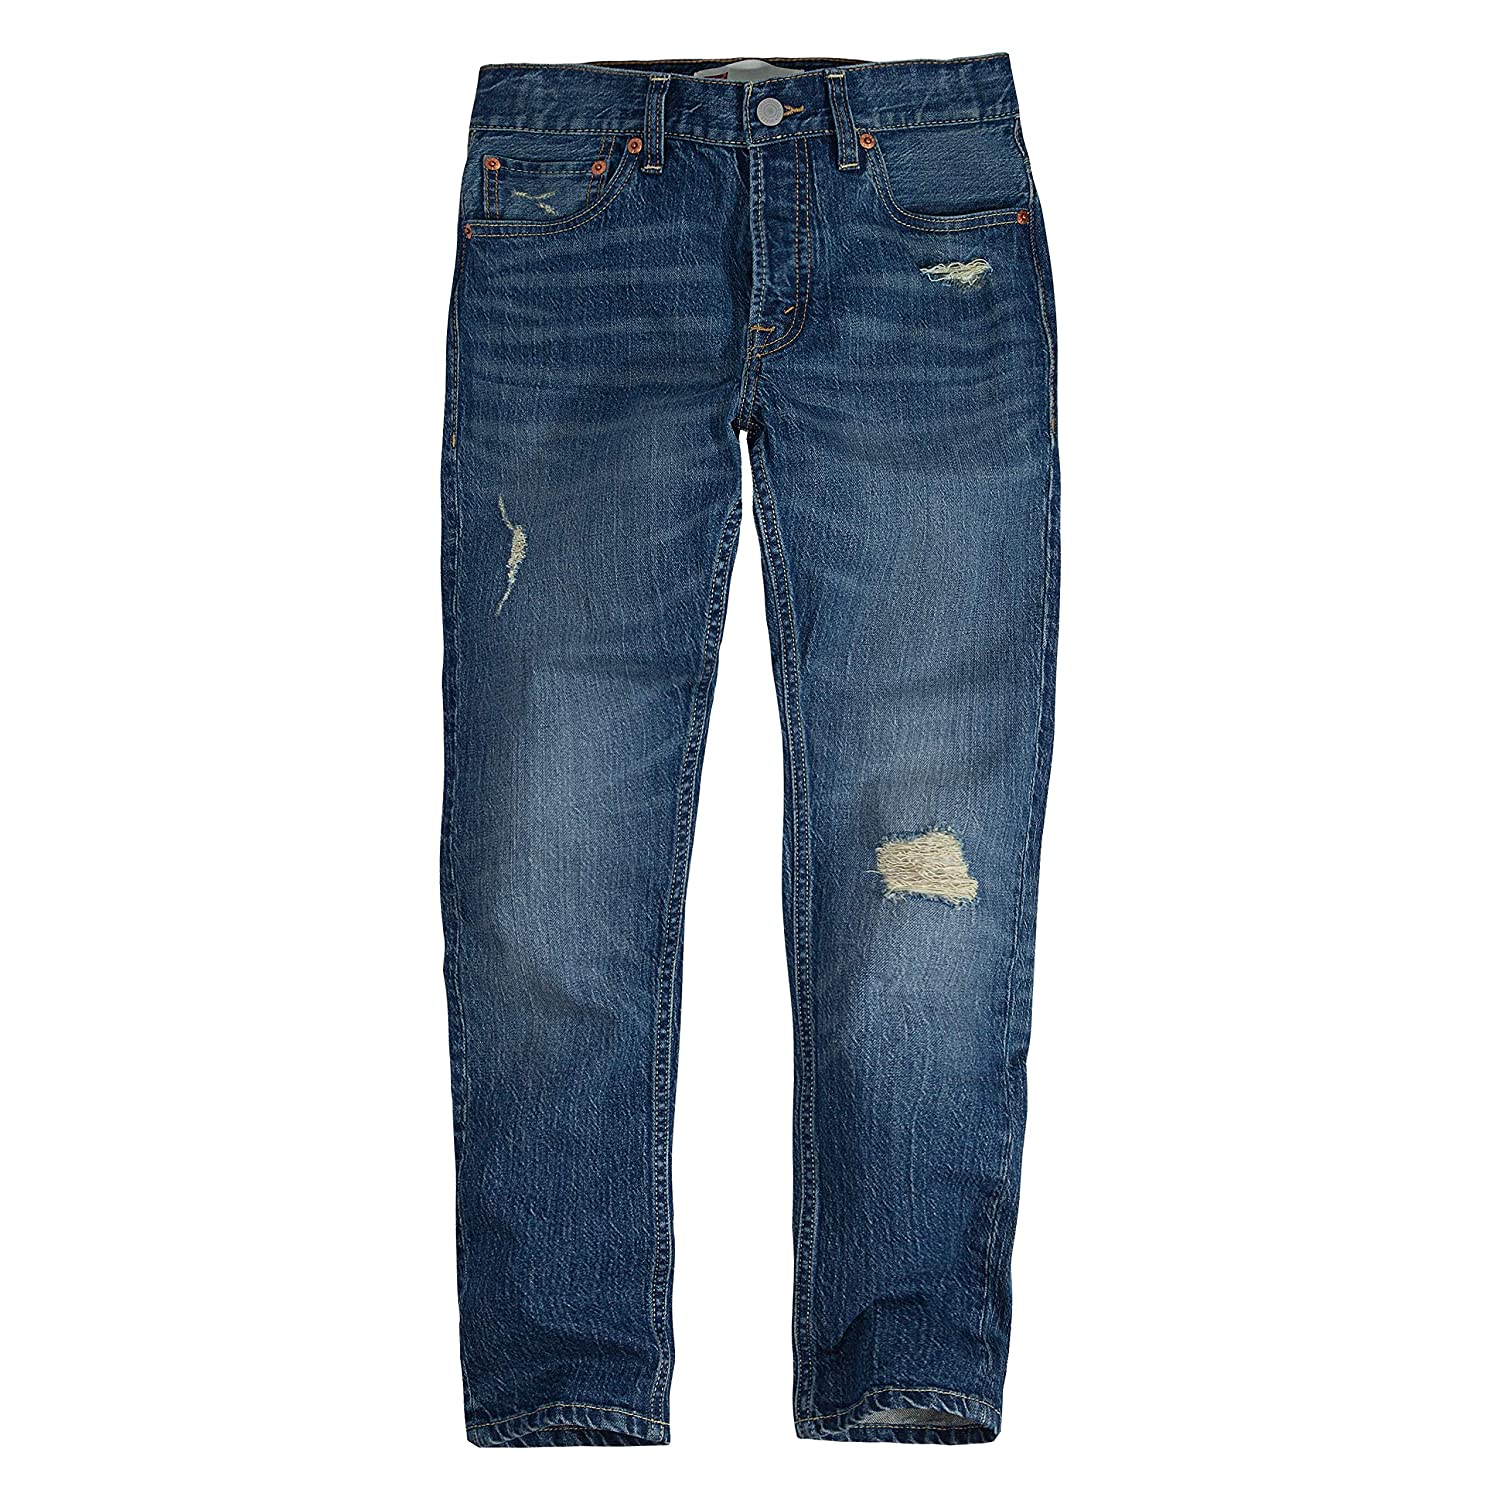 0f17f7b2 Take your style to the next level with Levi's® 501® Skinny Jeans.